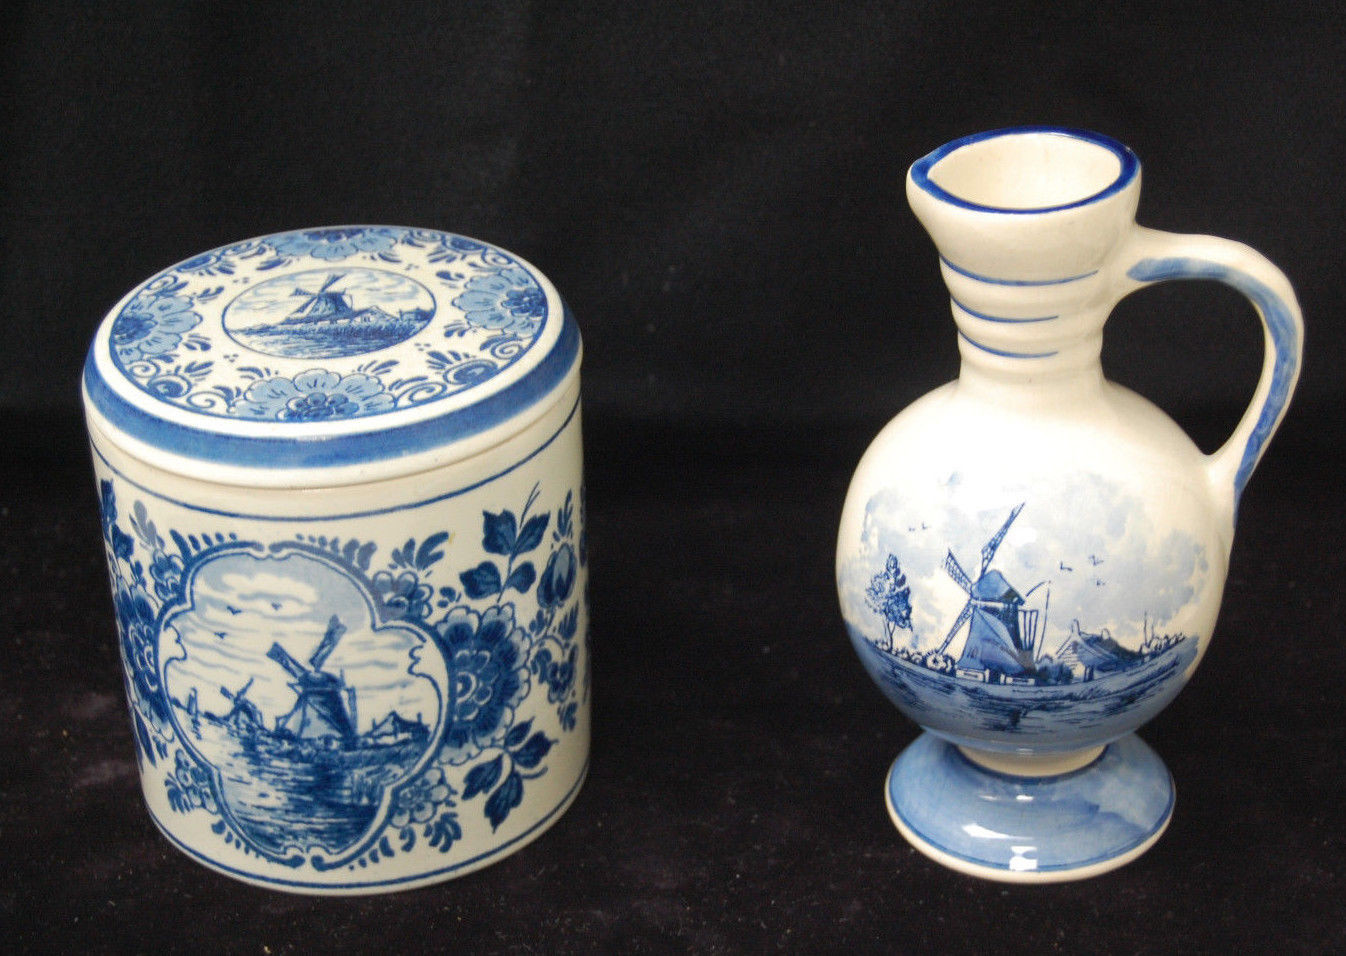 Hand Painted Delft Holland Bud Vase Of Set Of 2 Delft Blue Pieces Holland Vase W Handle Canister W Lid Pertaining to 1 Of 9only 1 Available